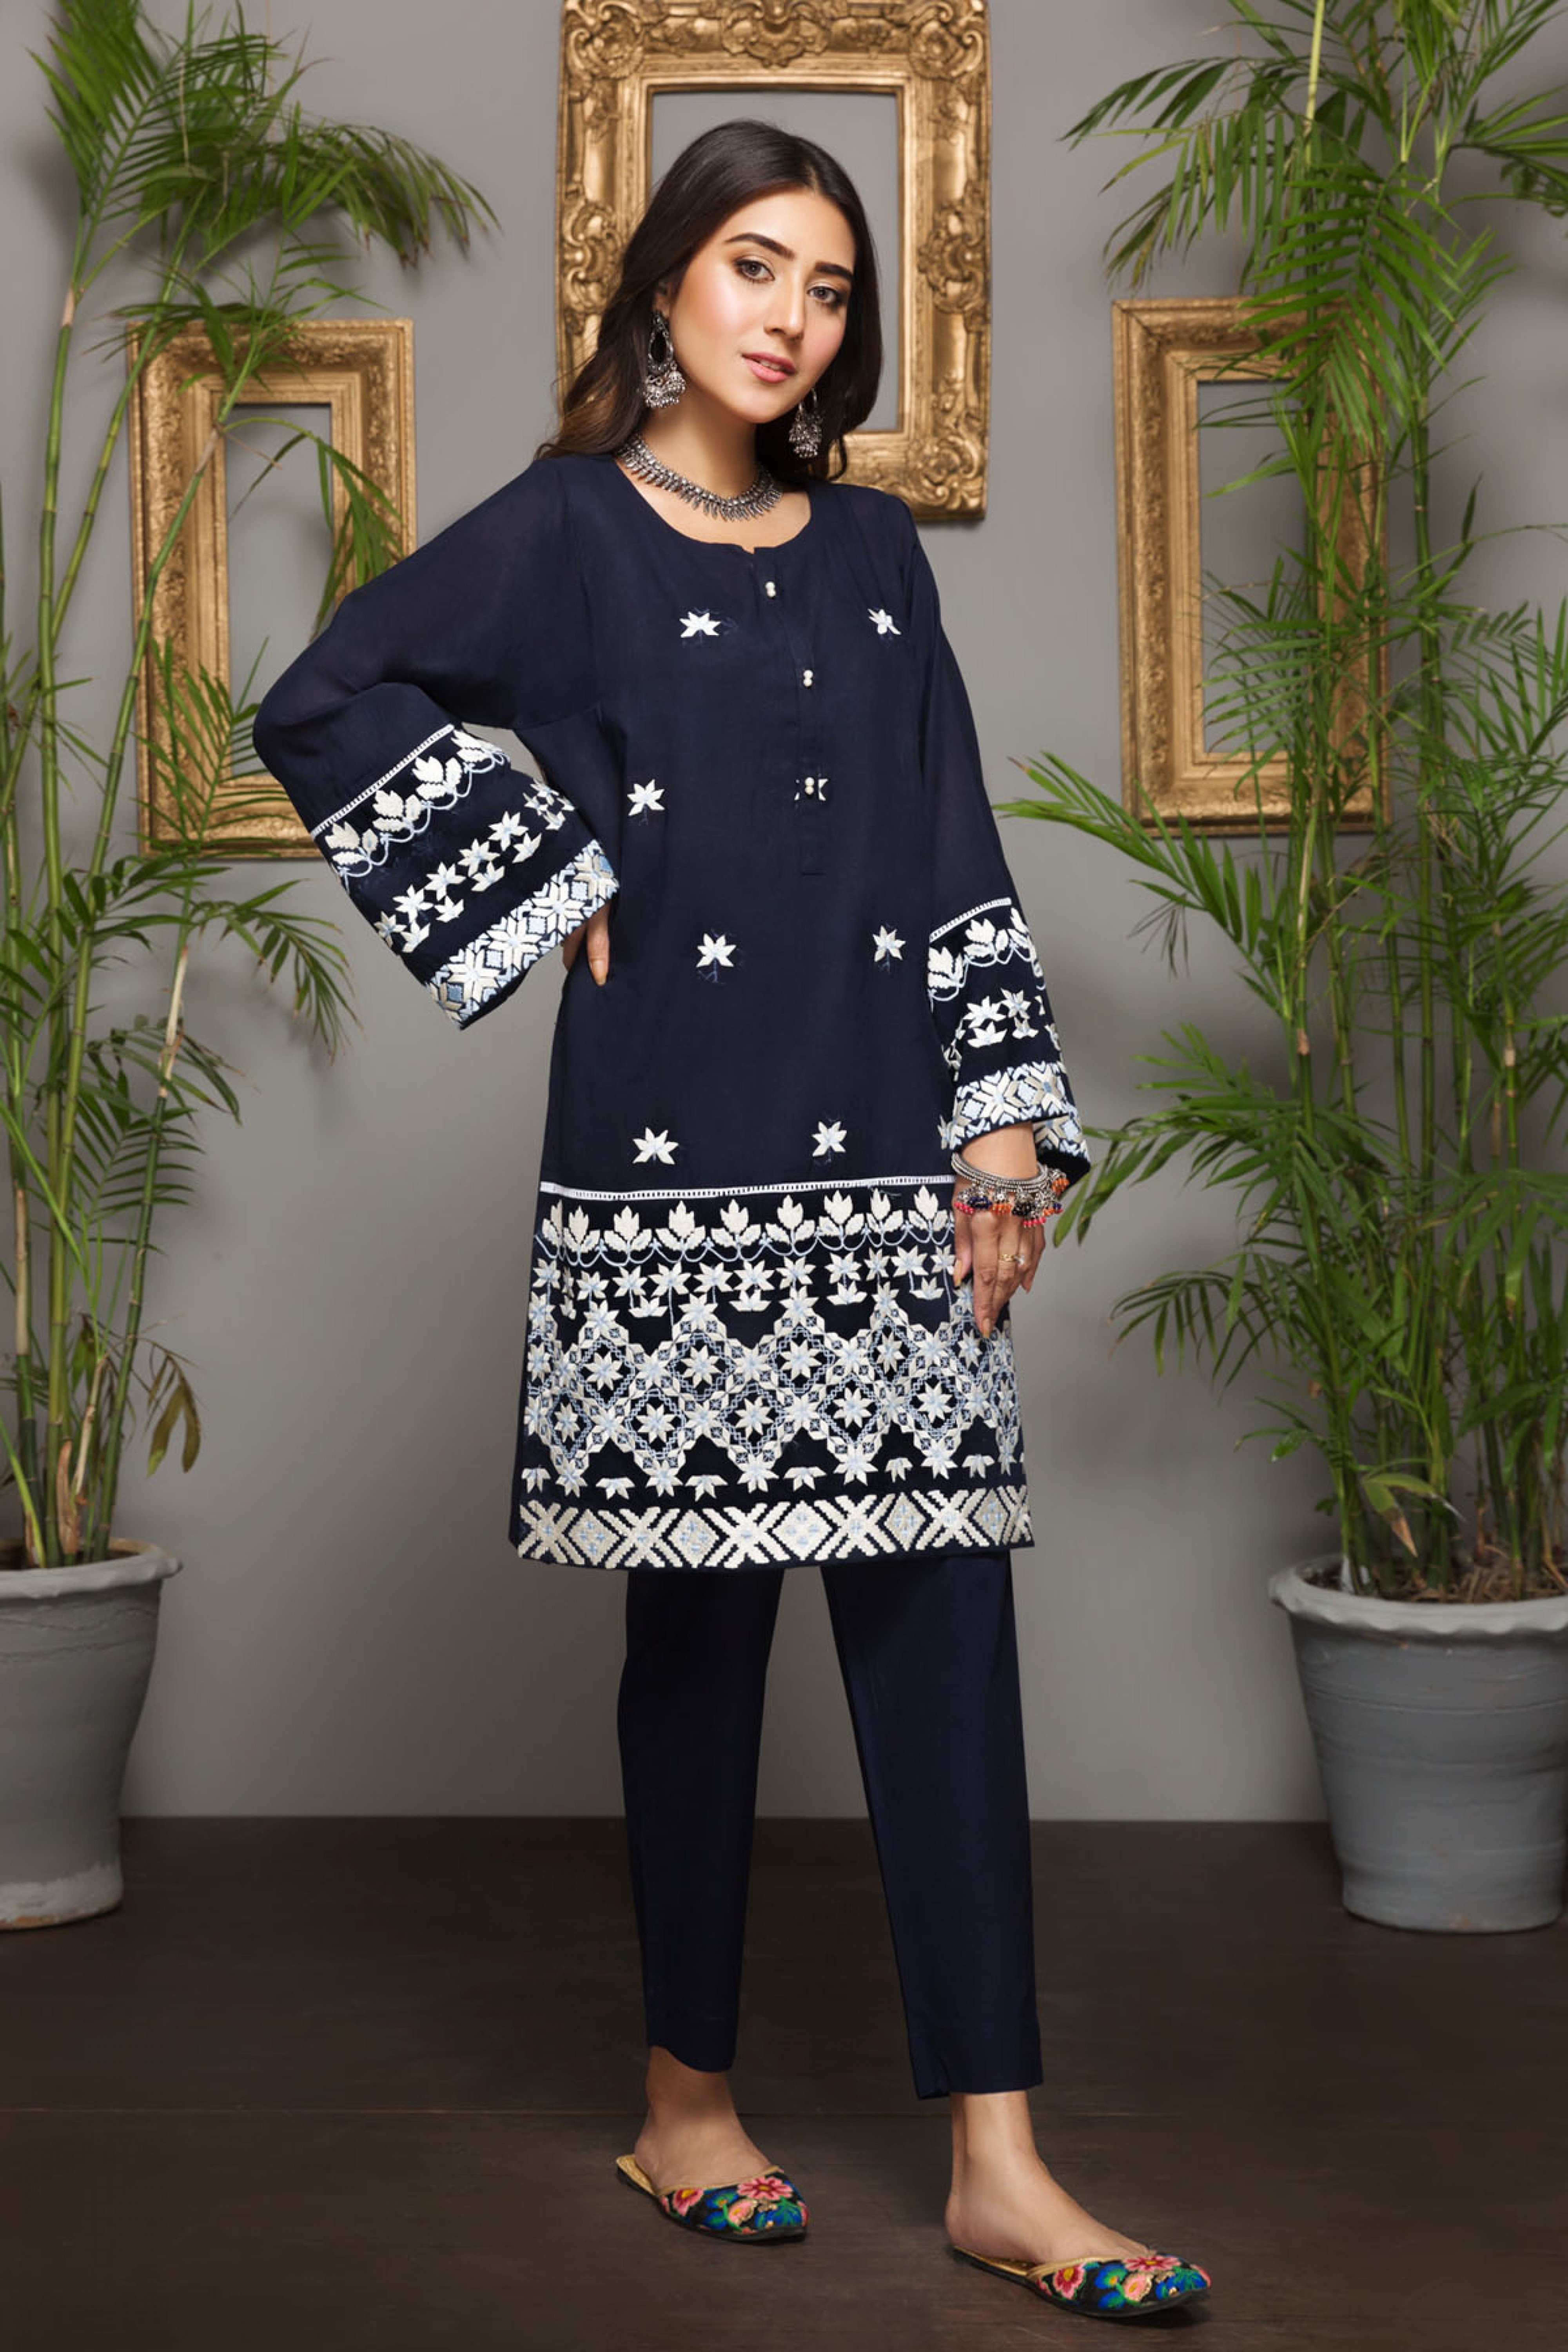 SWAN SONG (EMBROIDERED SHIRT)